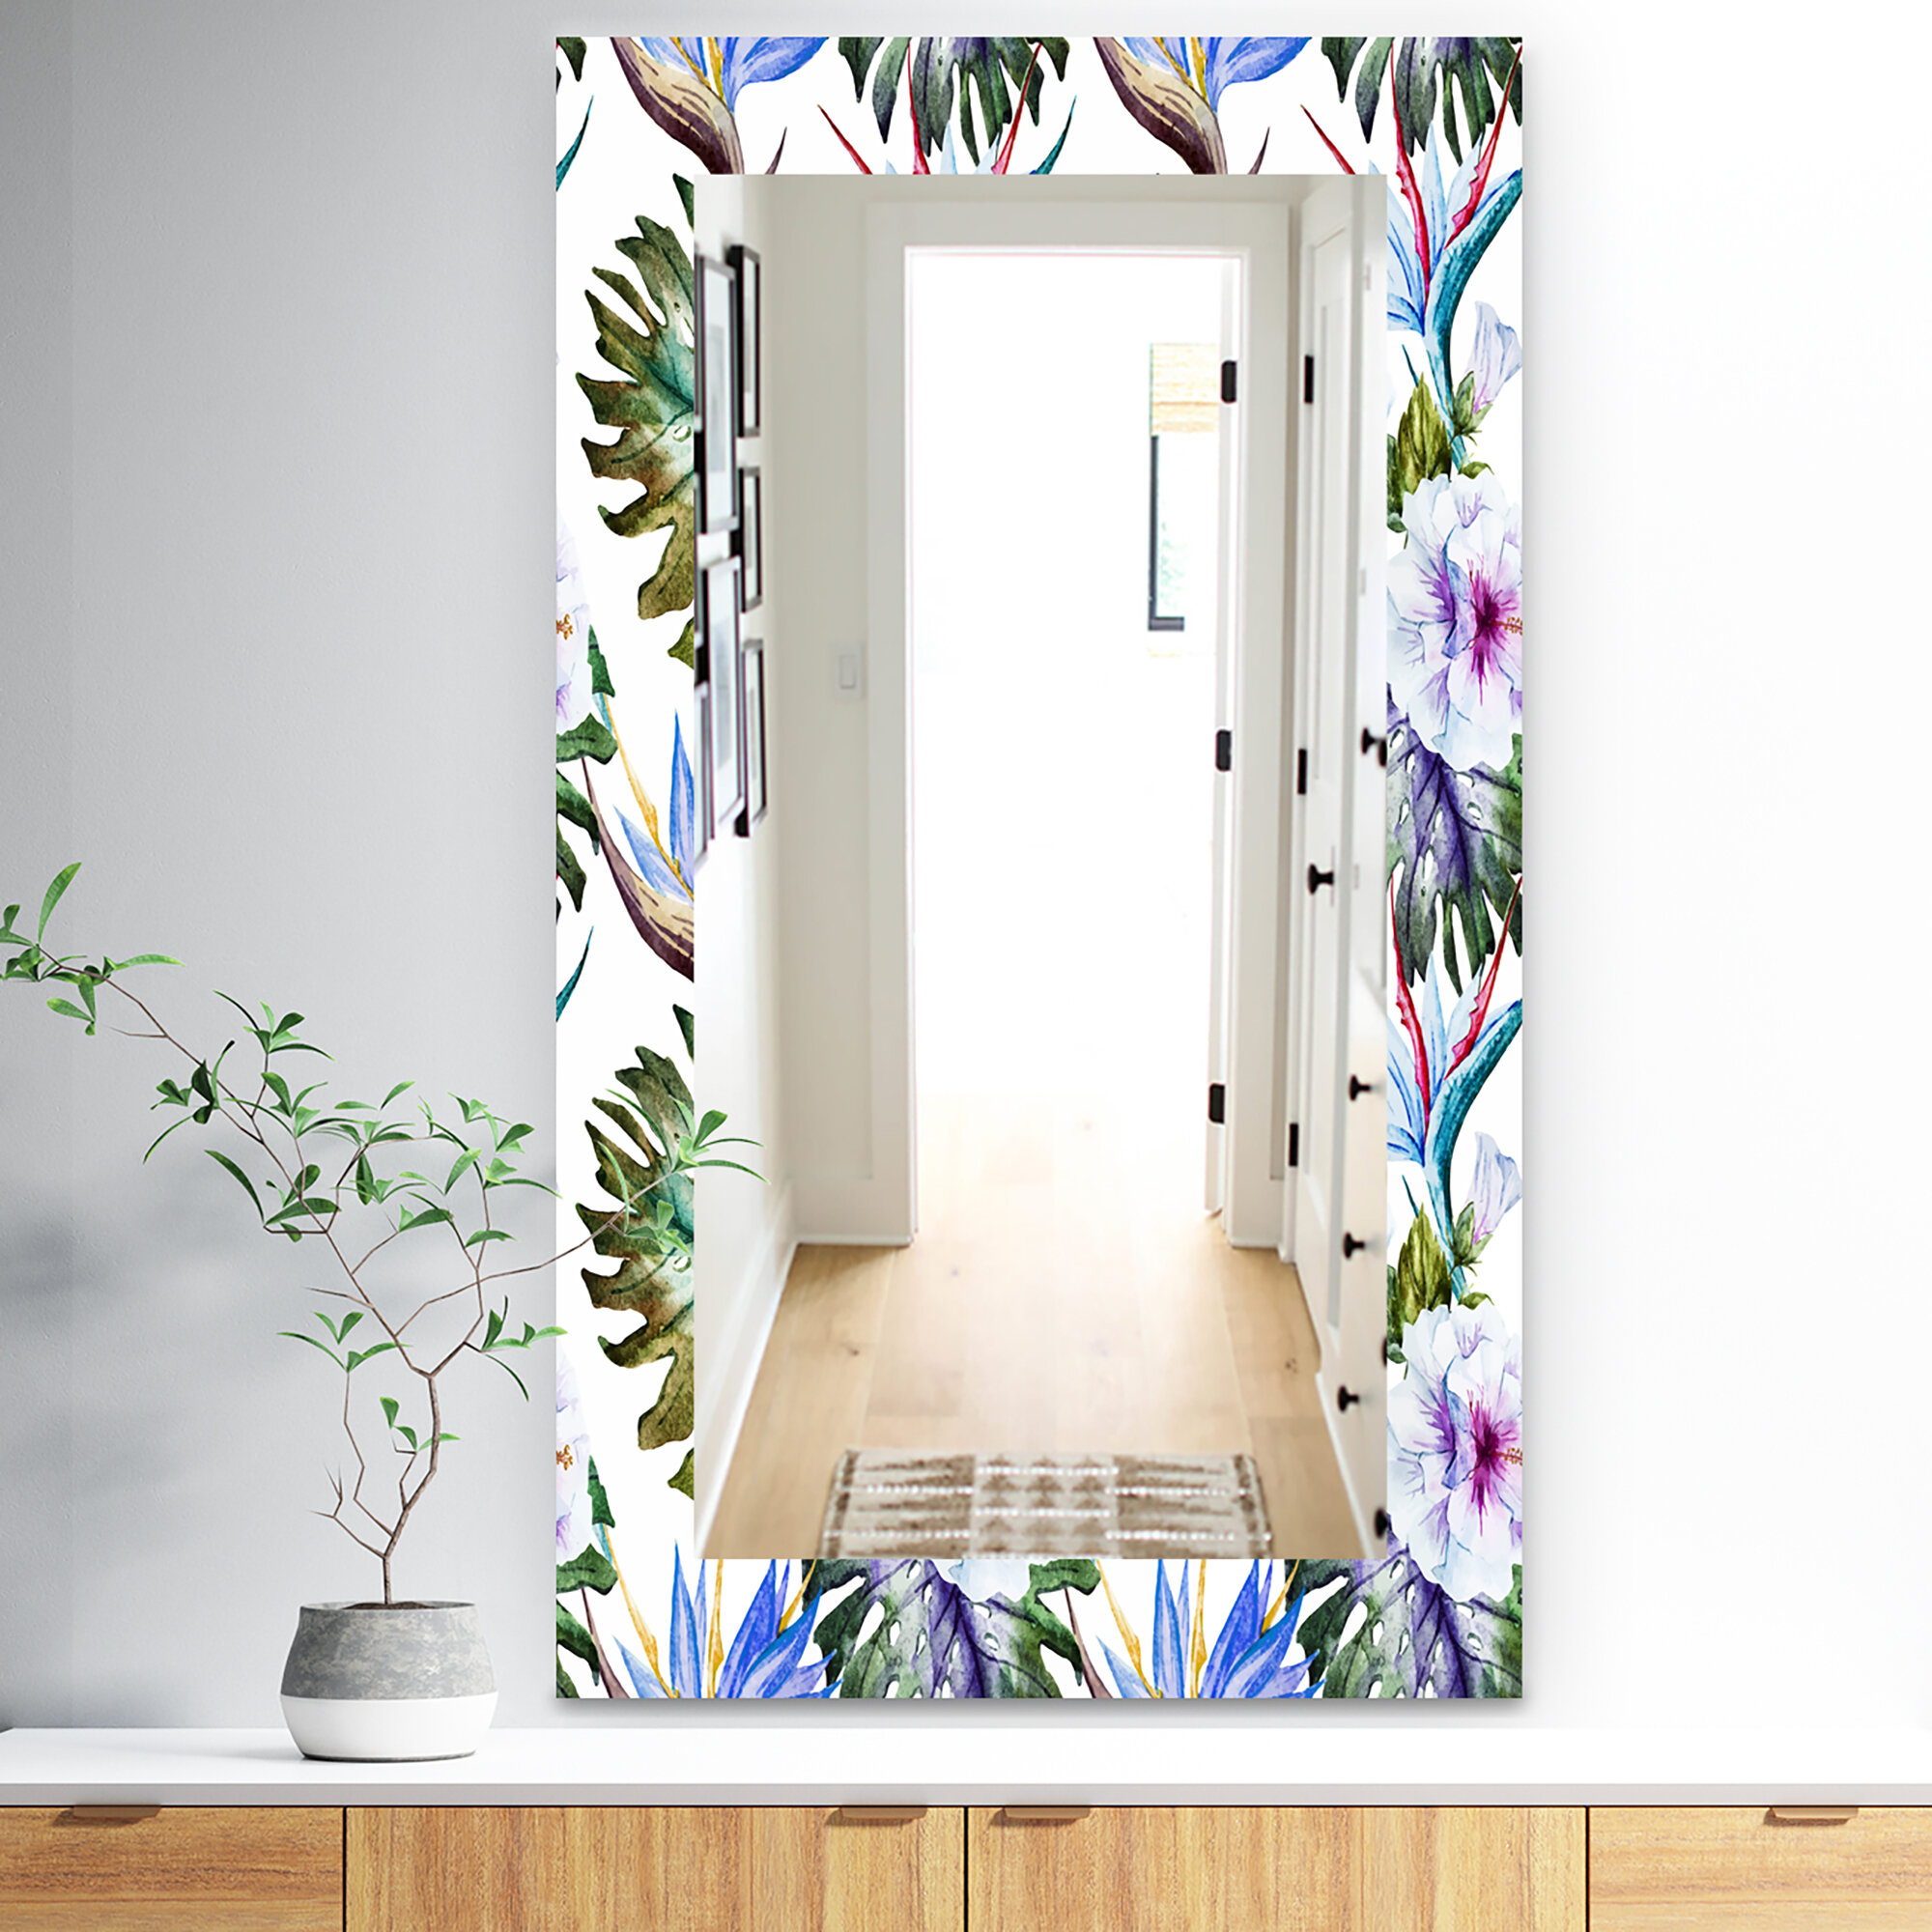 East Urban Home Tropical Traditional Mirror